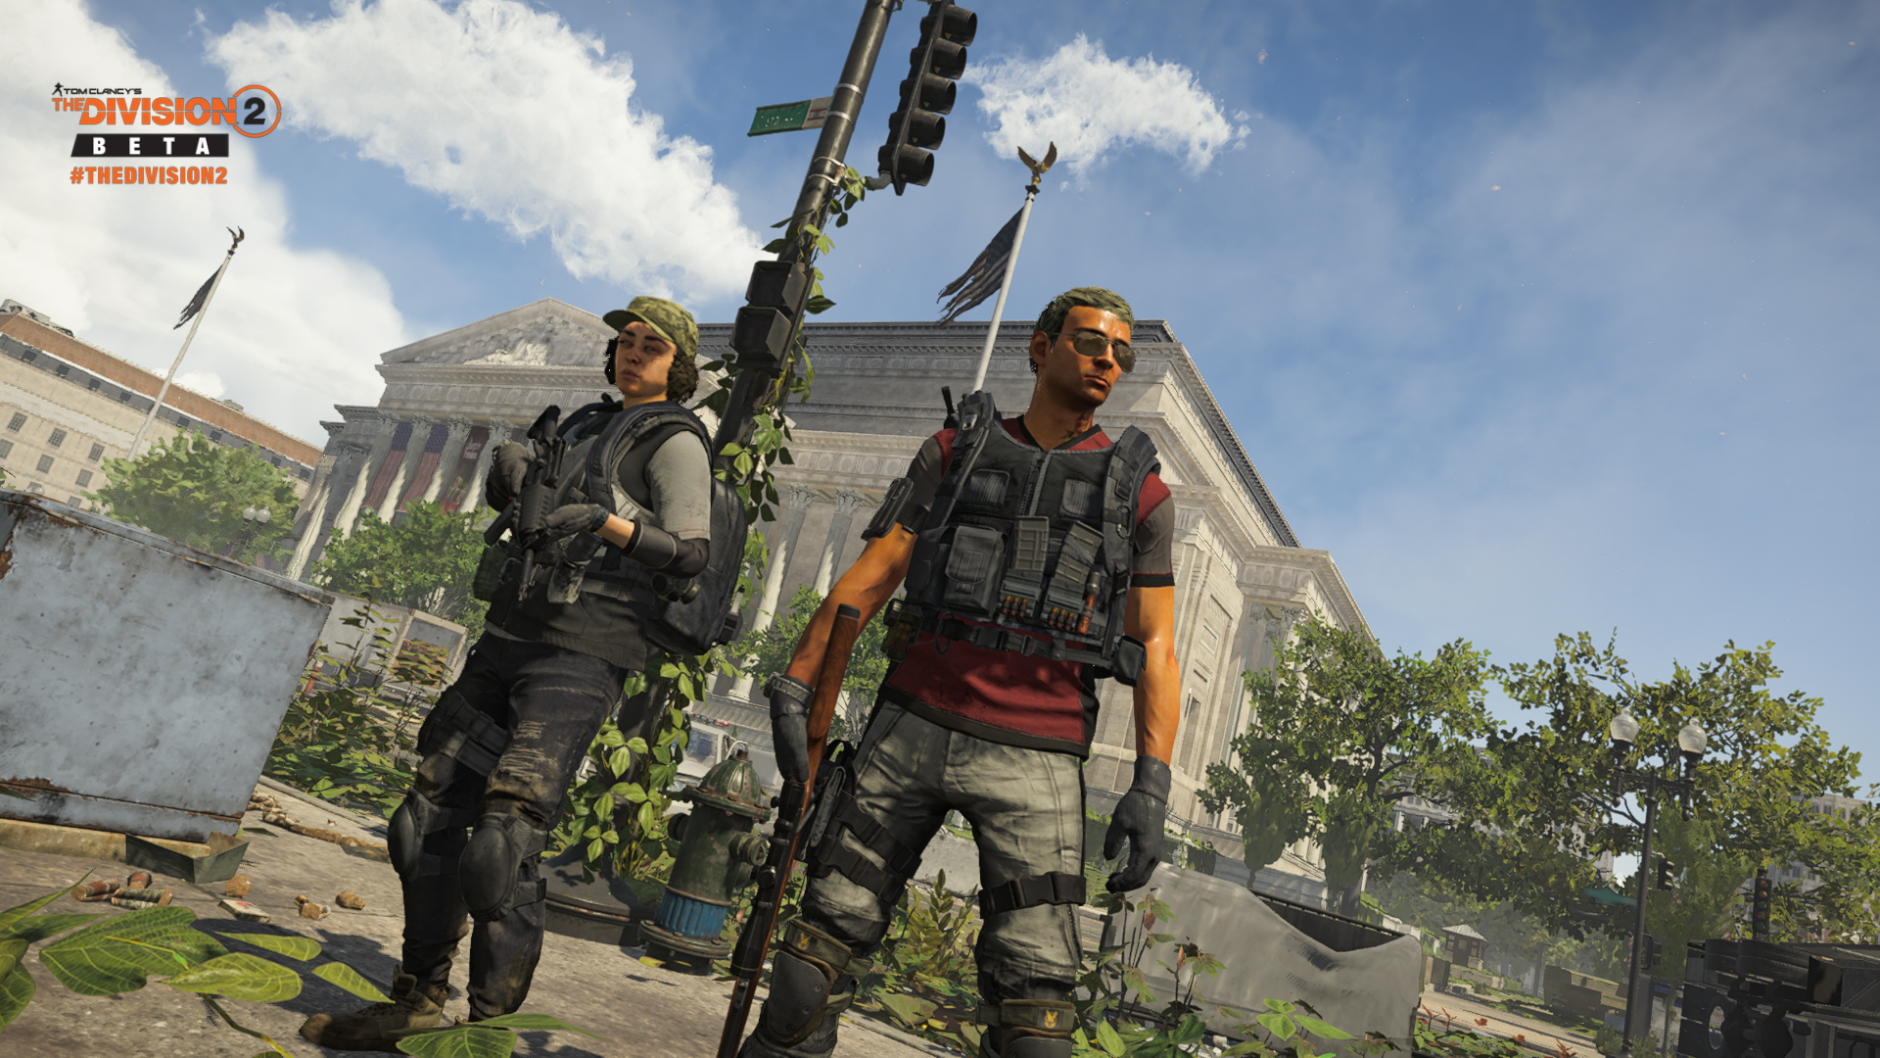 How The Division 2 video game recreated and destroyed DC | WTOP